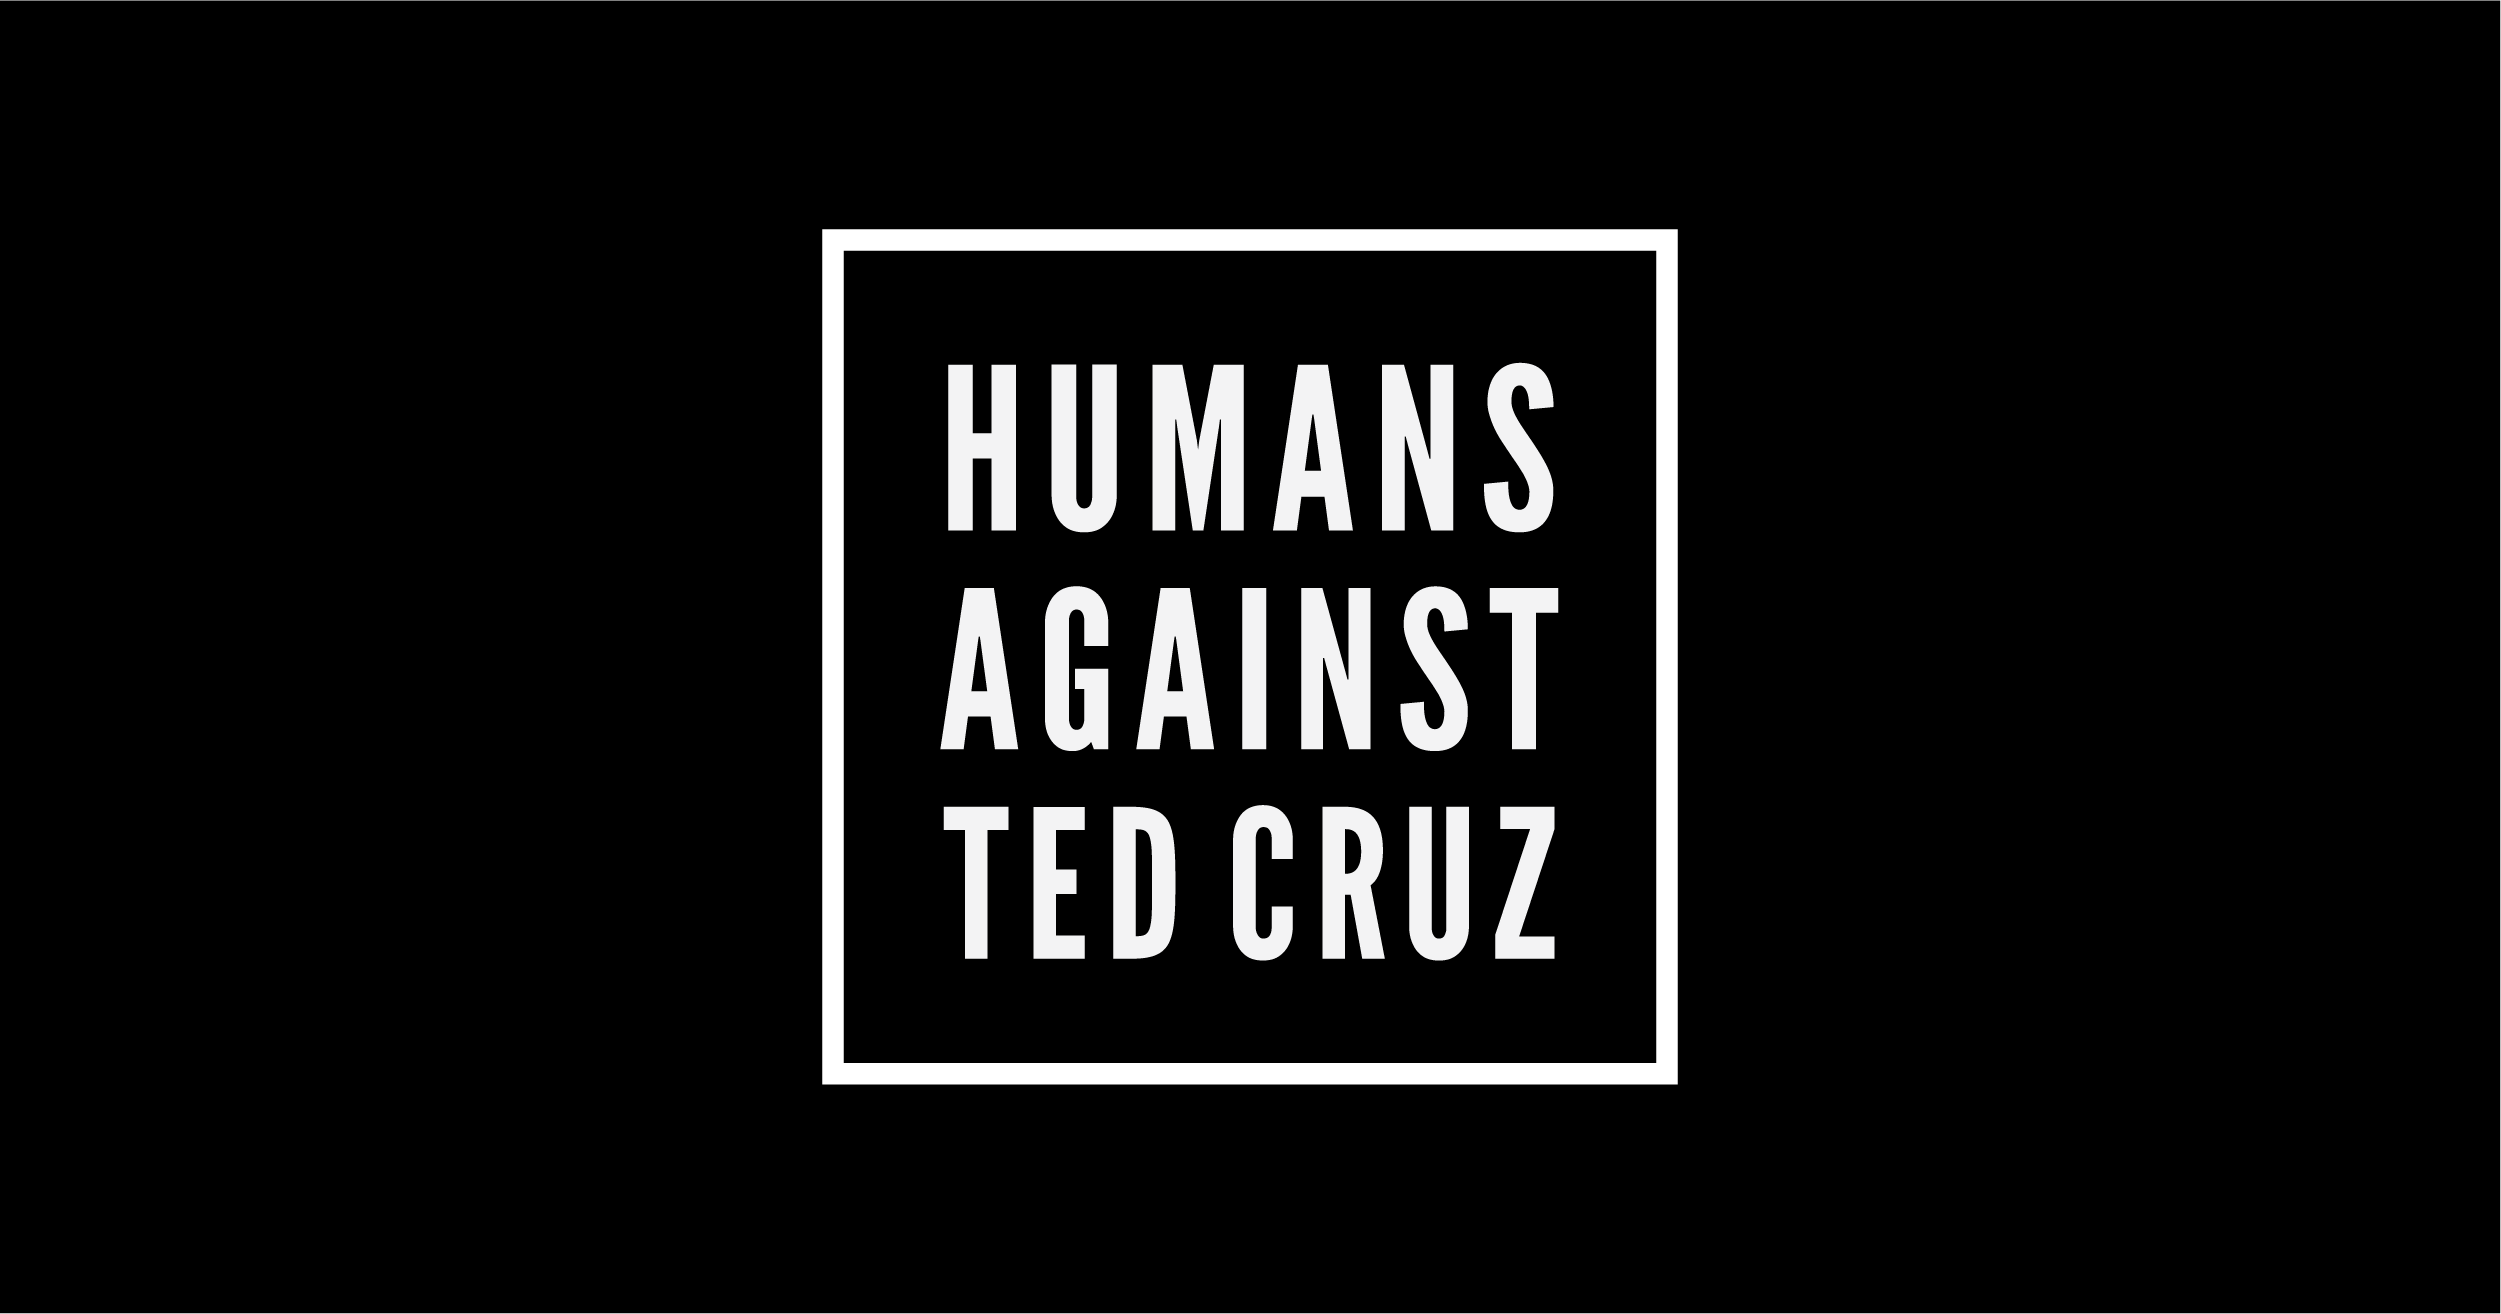 Humans Against Ted Cruz